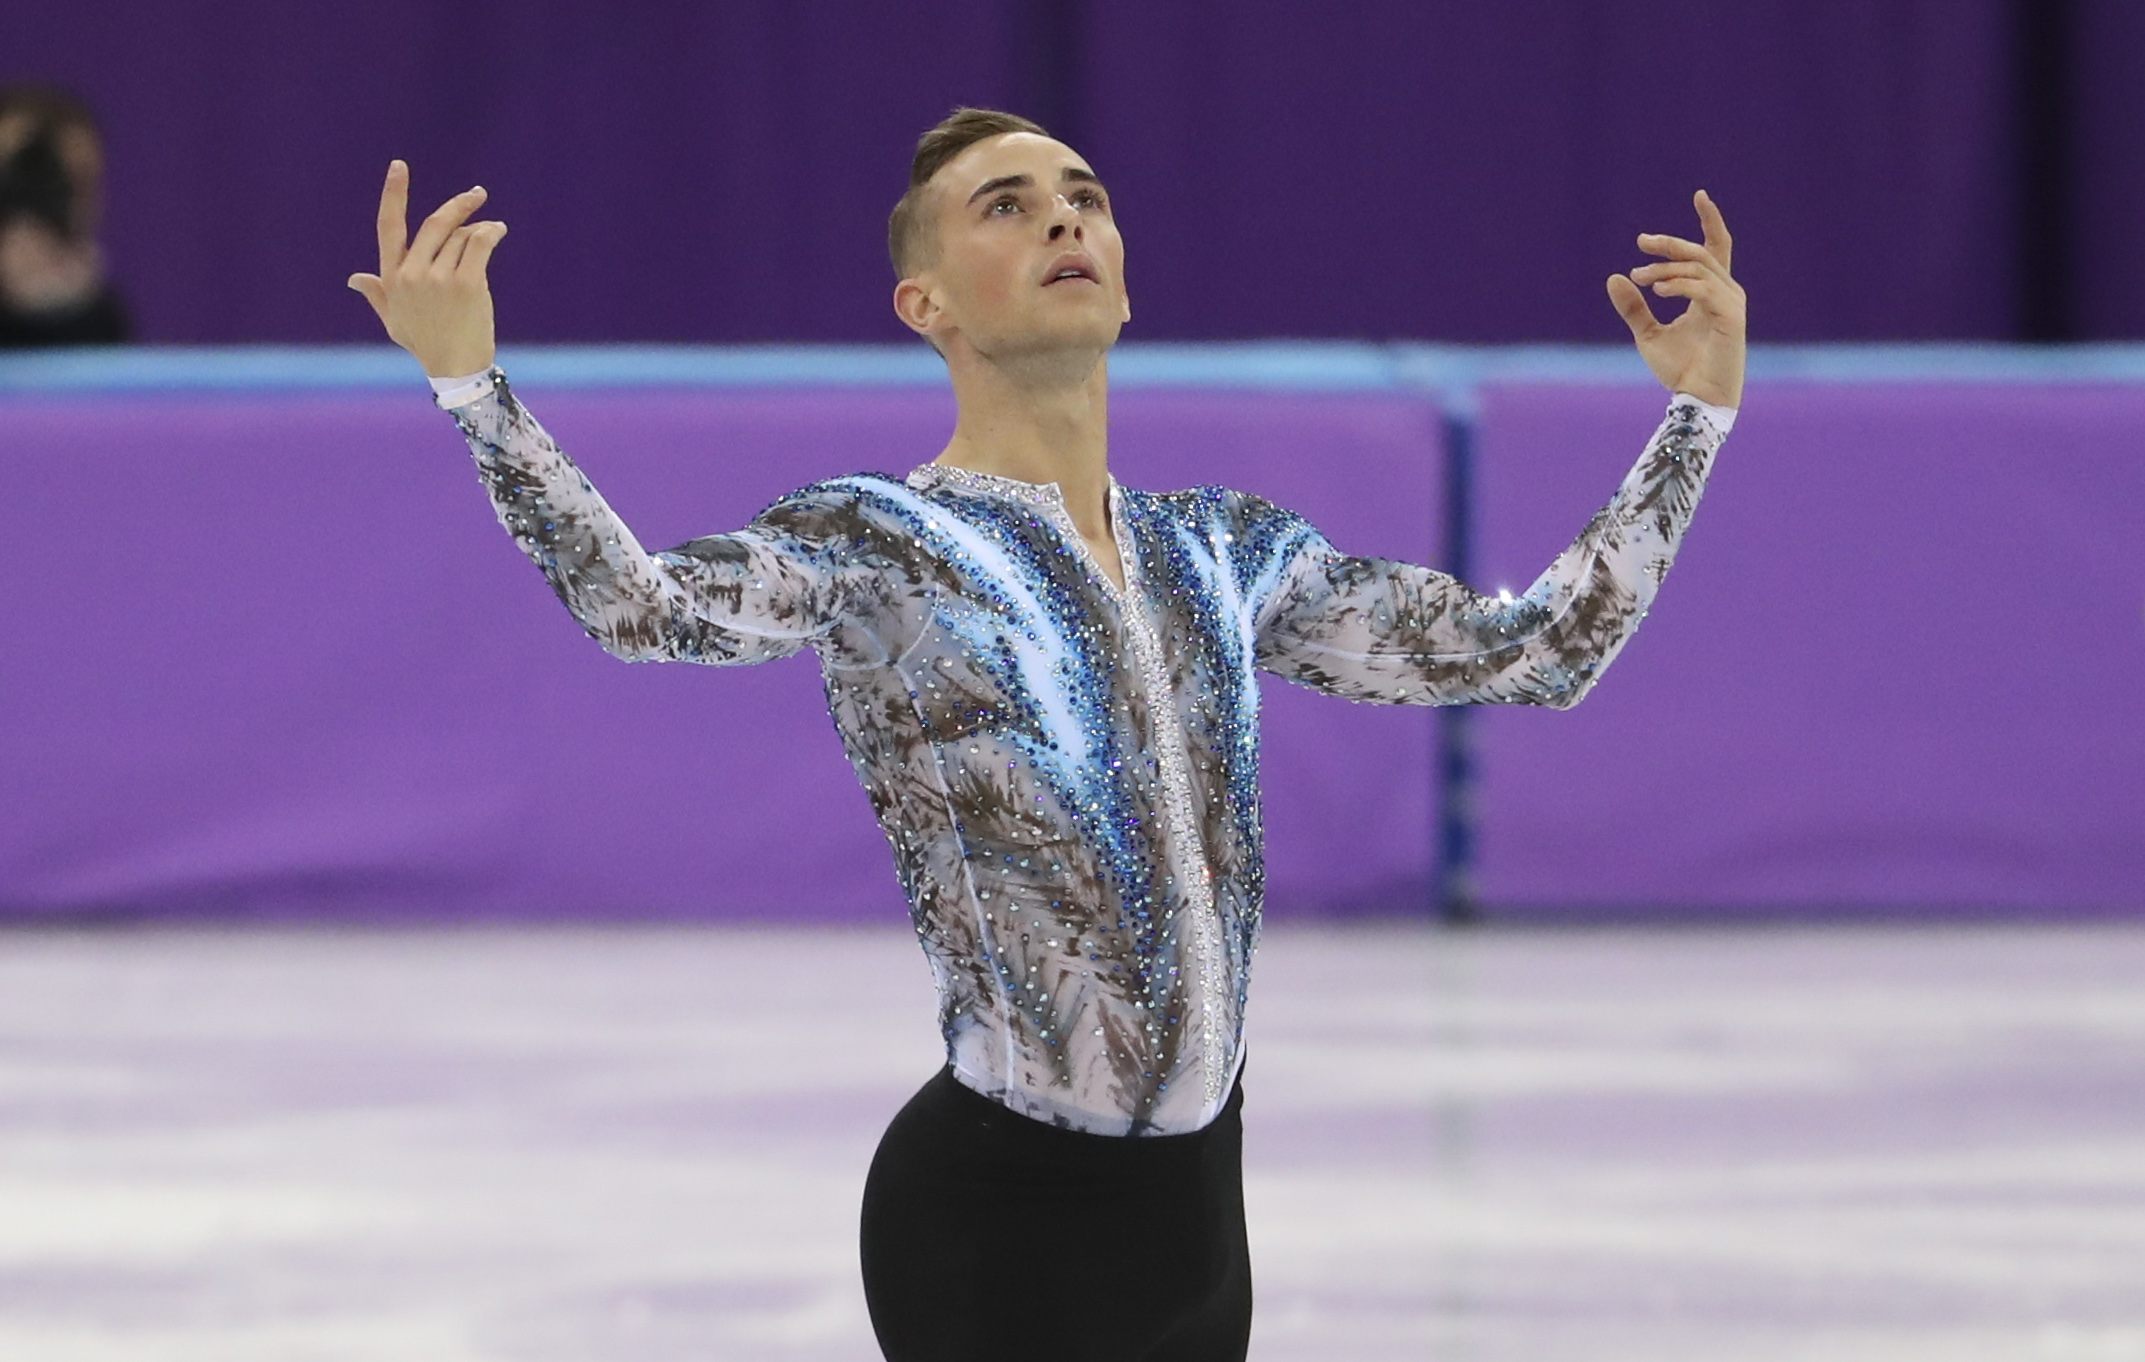 Adam Rippon of USA competes in the Men Free Skating during the Figure Skating Team Event on day three of the PyeongChang 2018 Winter Olympic Games at Gangneung Ice Arena on February 12, 2018 in Gangneung, South Korea.